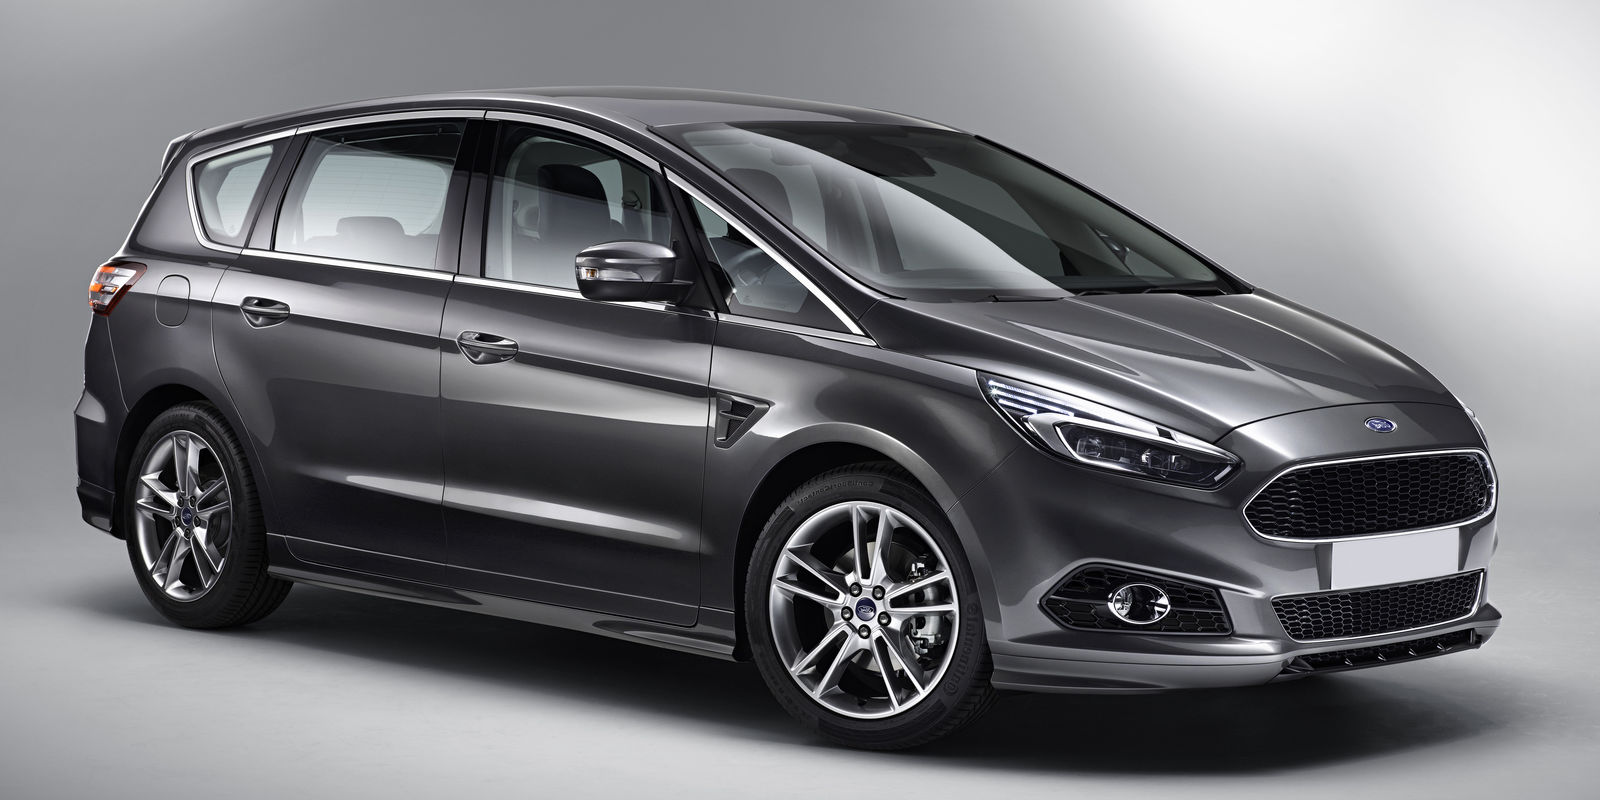 S Max Schiebetür Ford S-max Review & Deals | Carwow